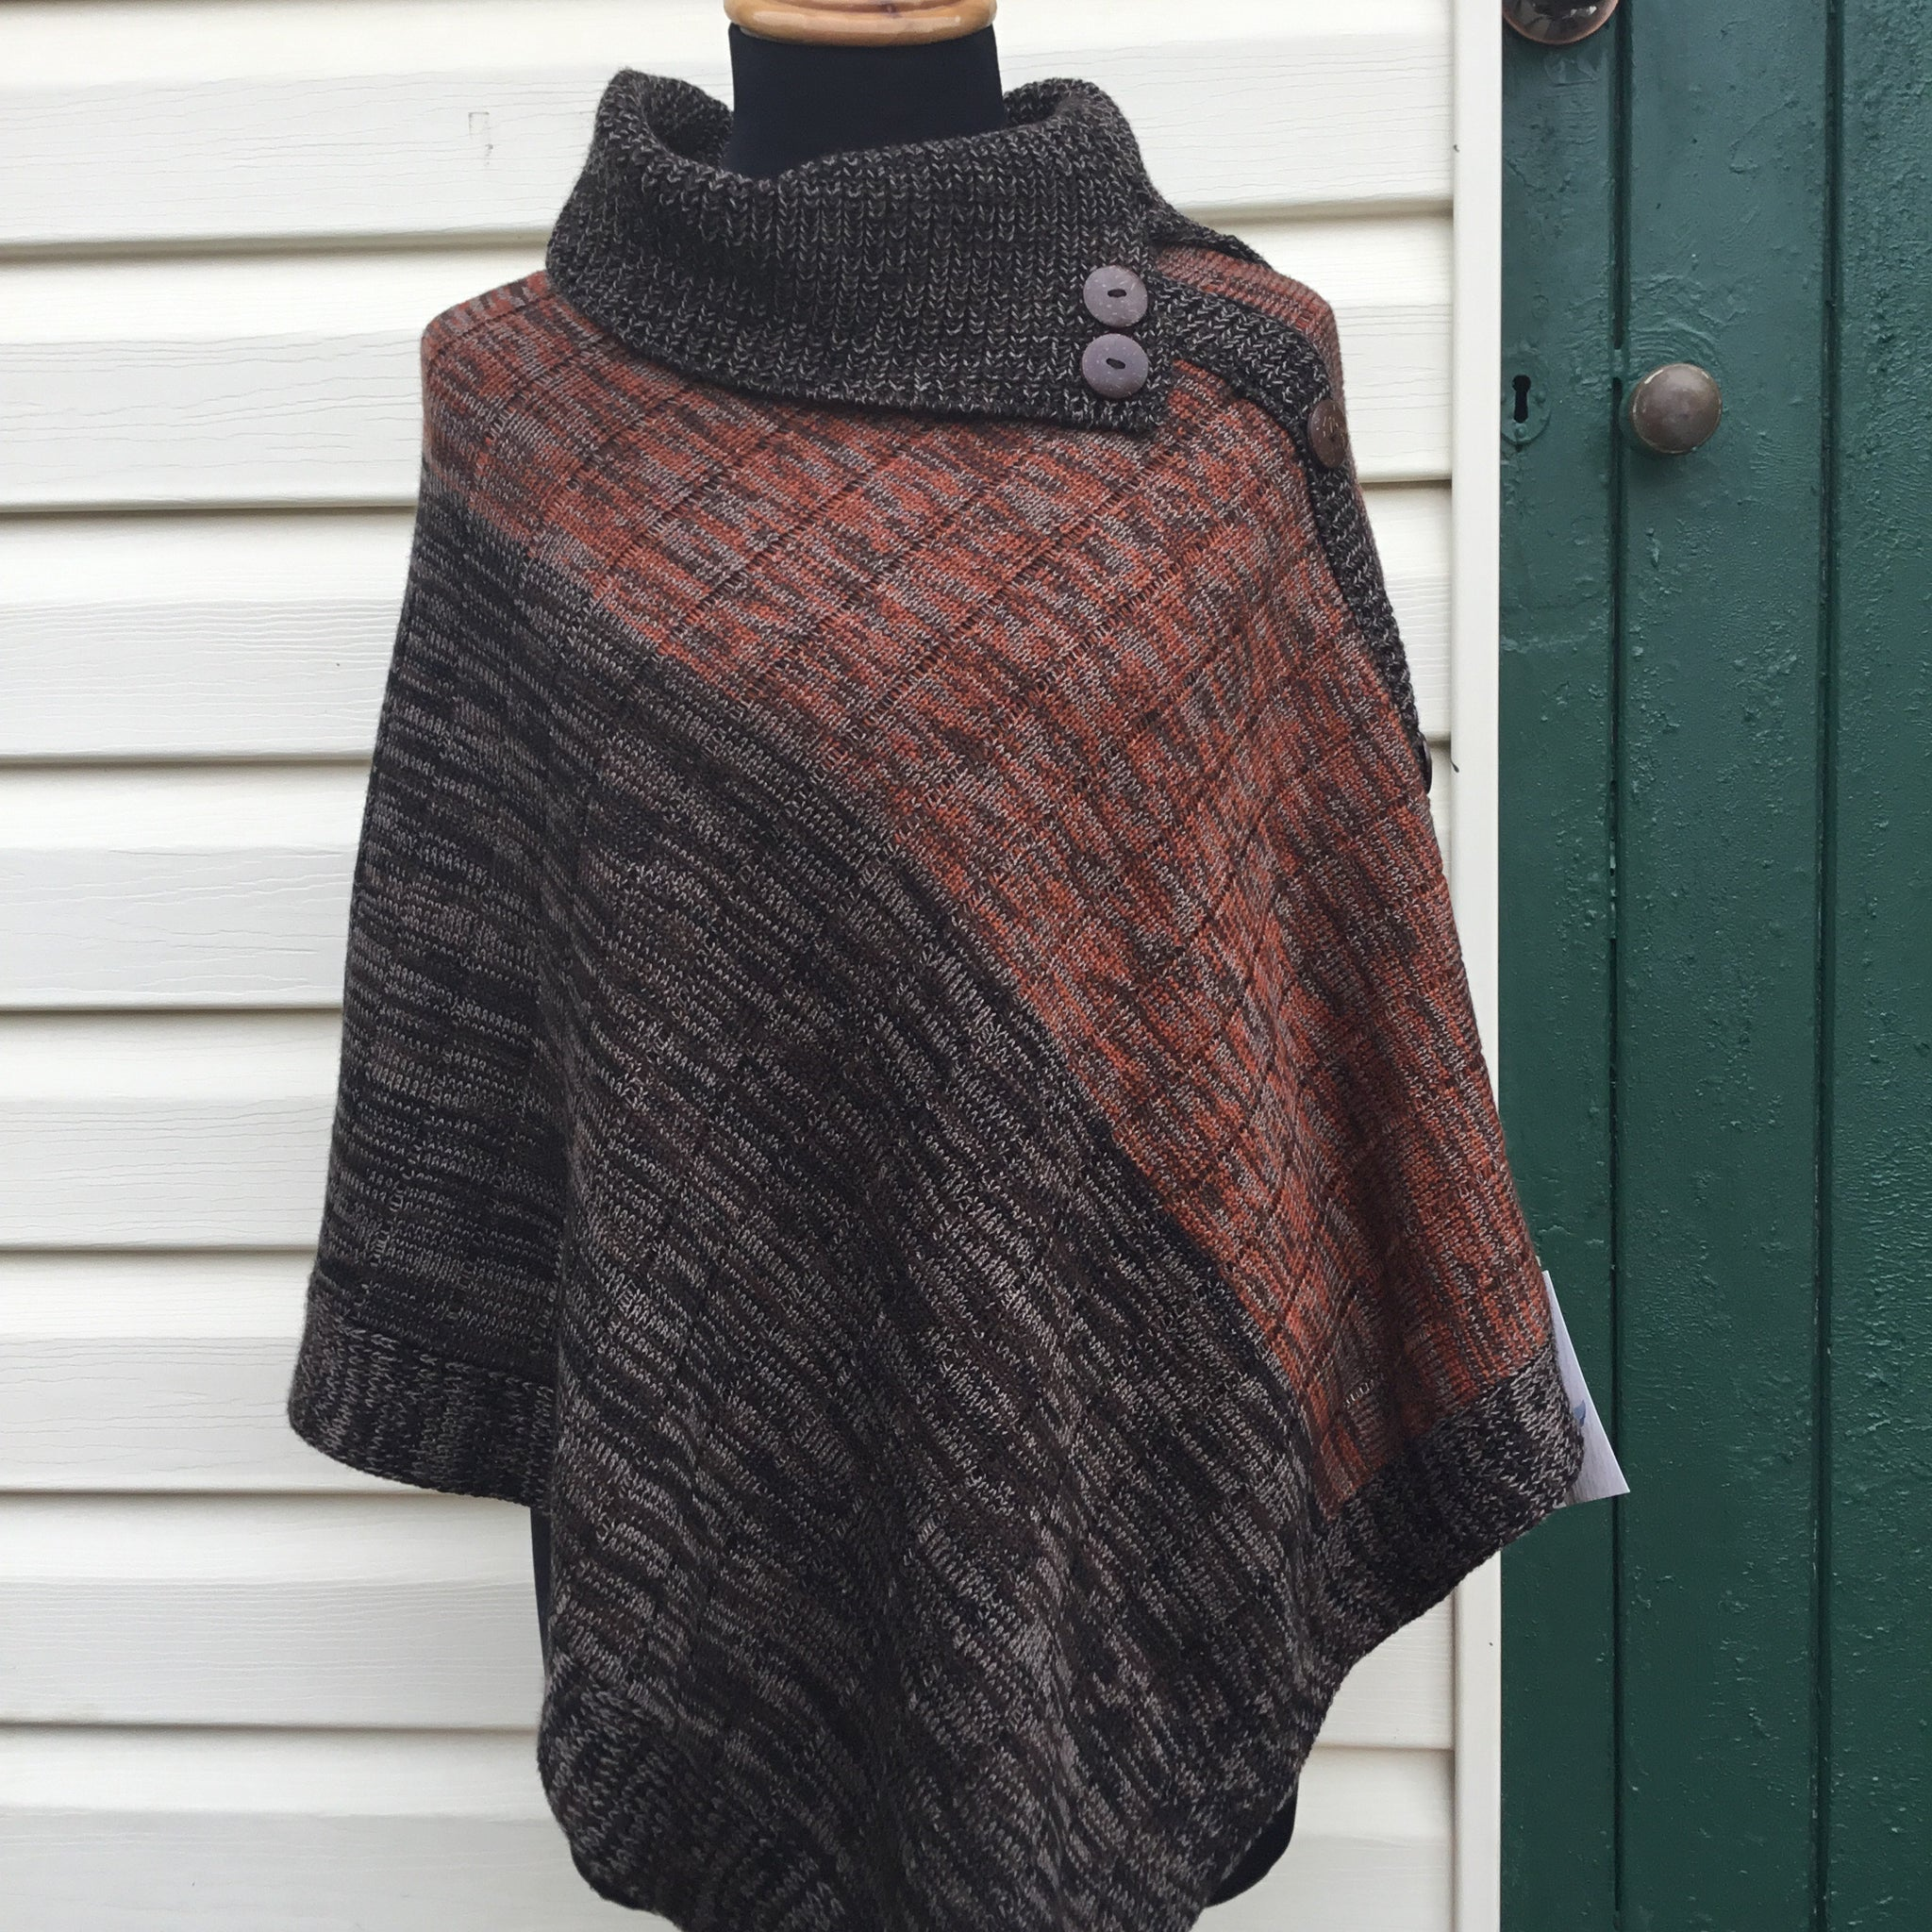 Fair Trade Ethical Woollen Poncho with Buttons